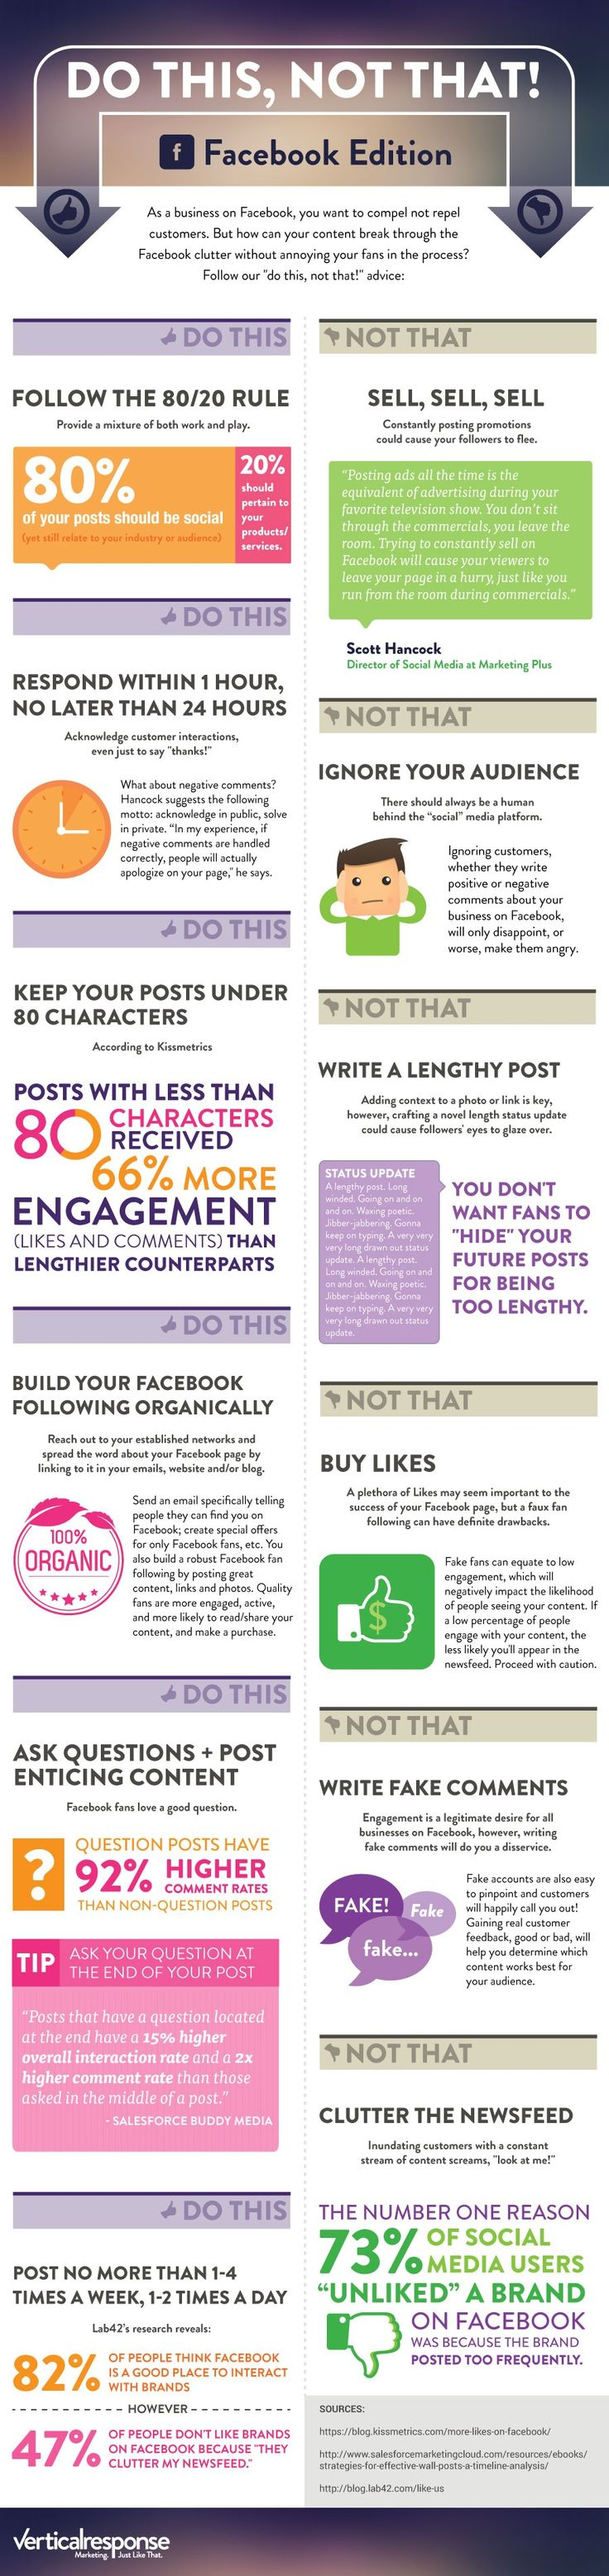 Facebook Marketing - The 12 Do's and Don'ts | WeRSM | We Are Social Media  #marshacollins #ilovemyhome #realtor #homeiswheretheheartis